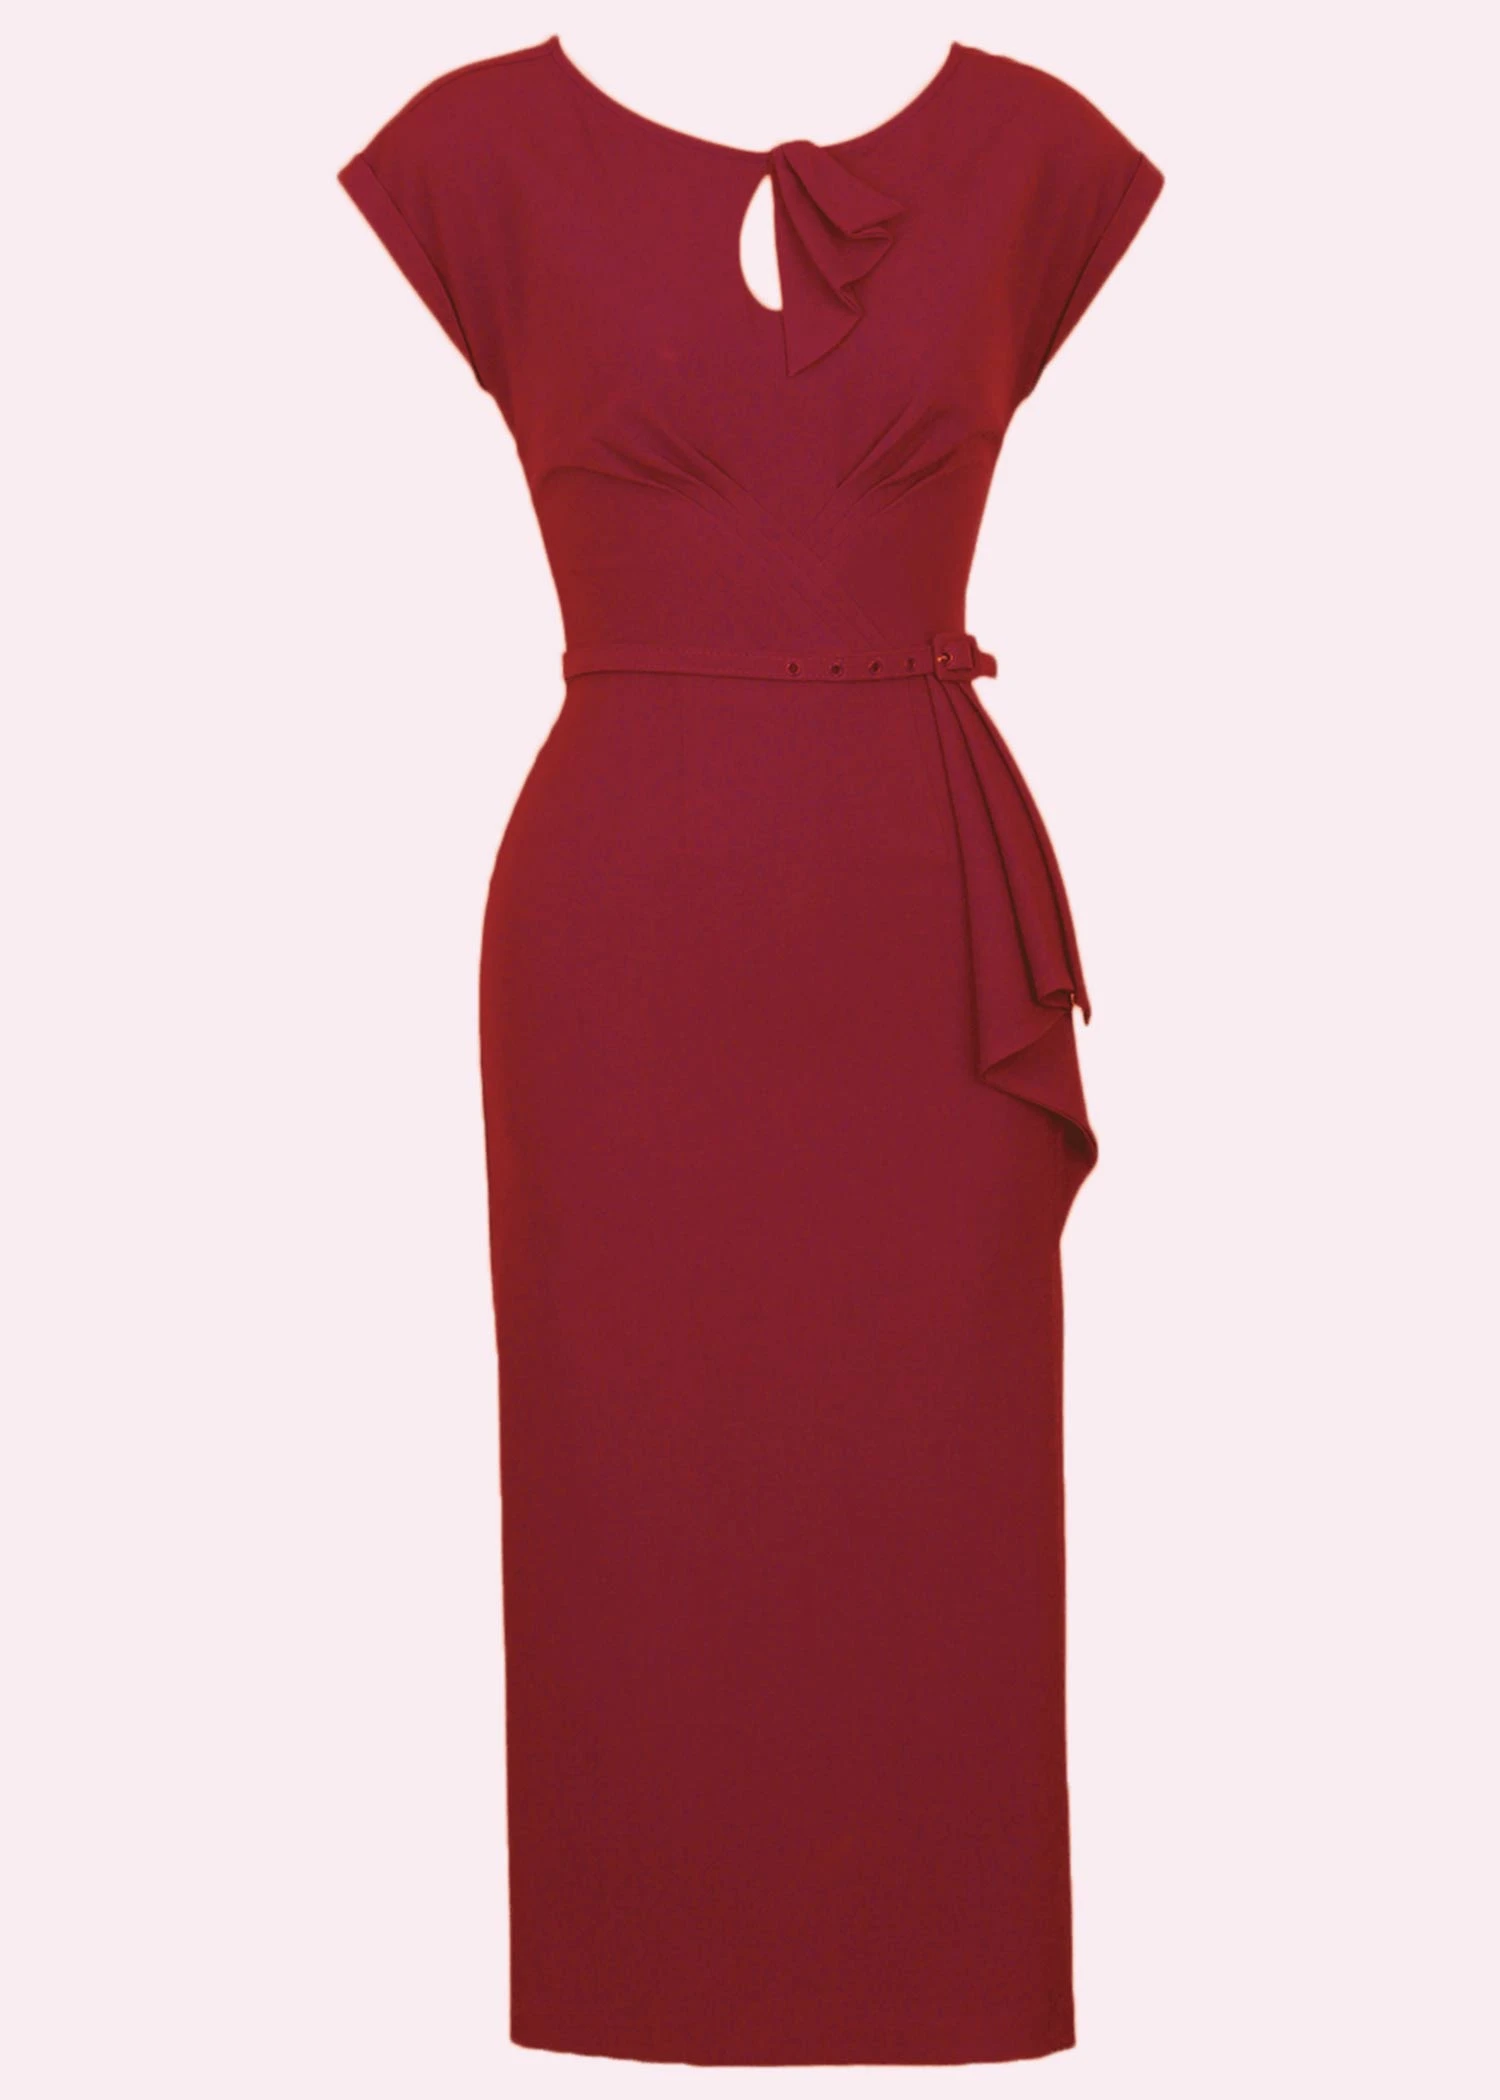 Beautiful art deco inspired cocktail dress from Stop Staring in red